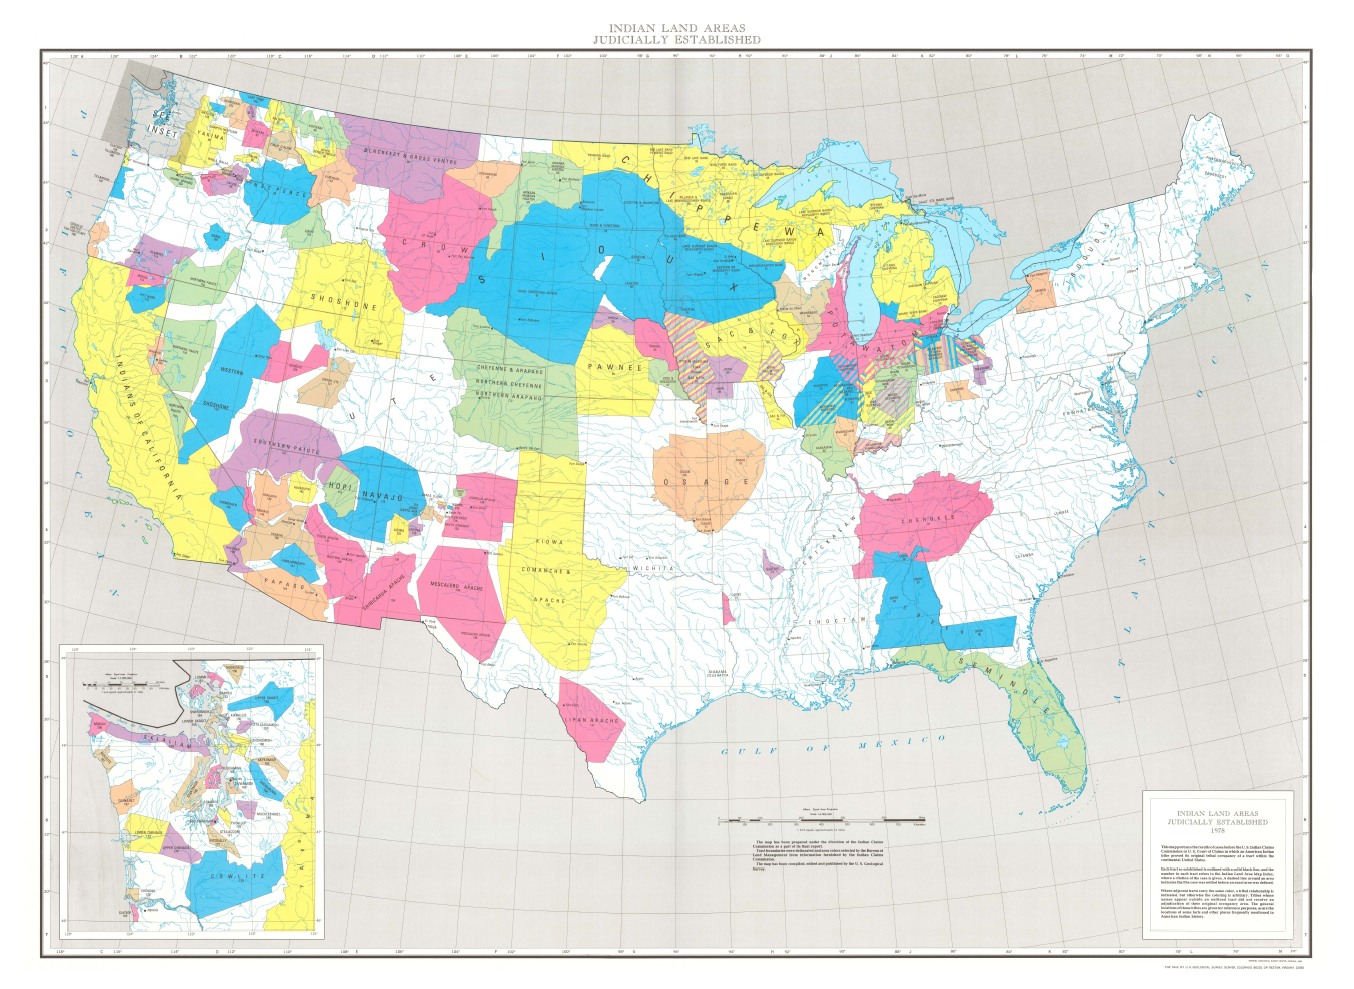 Thumbnail image of document cover: Indian Land Areas Judicially Established